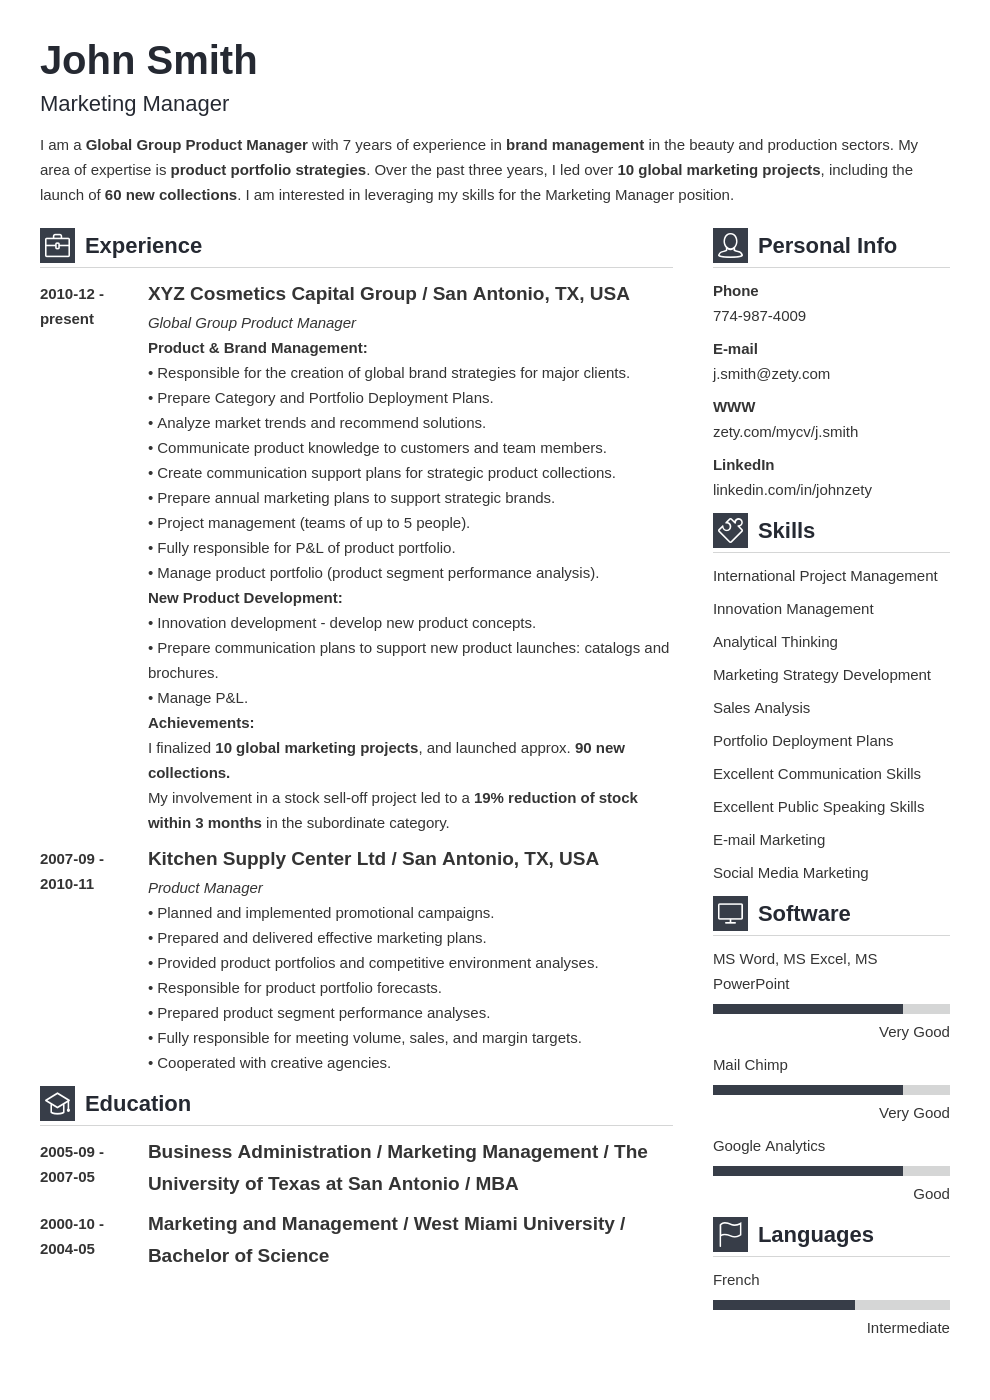 Listing college on resume pay for finance essays